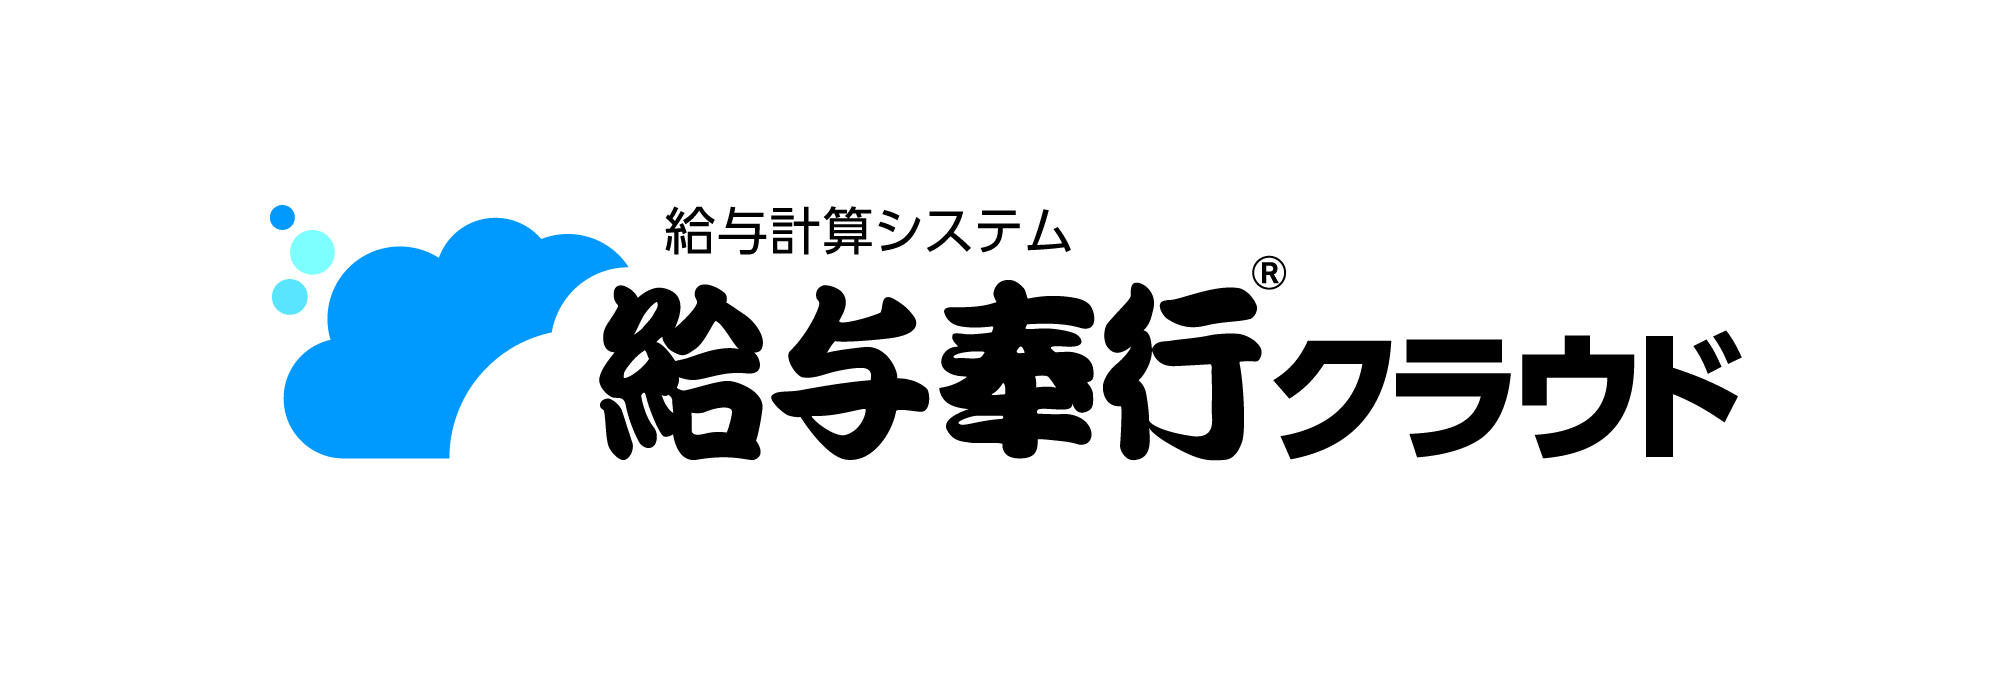 116.kyuyo_cloud_logo.jpg